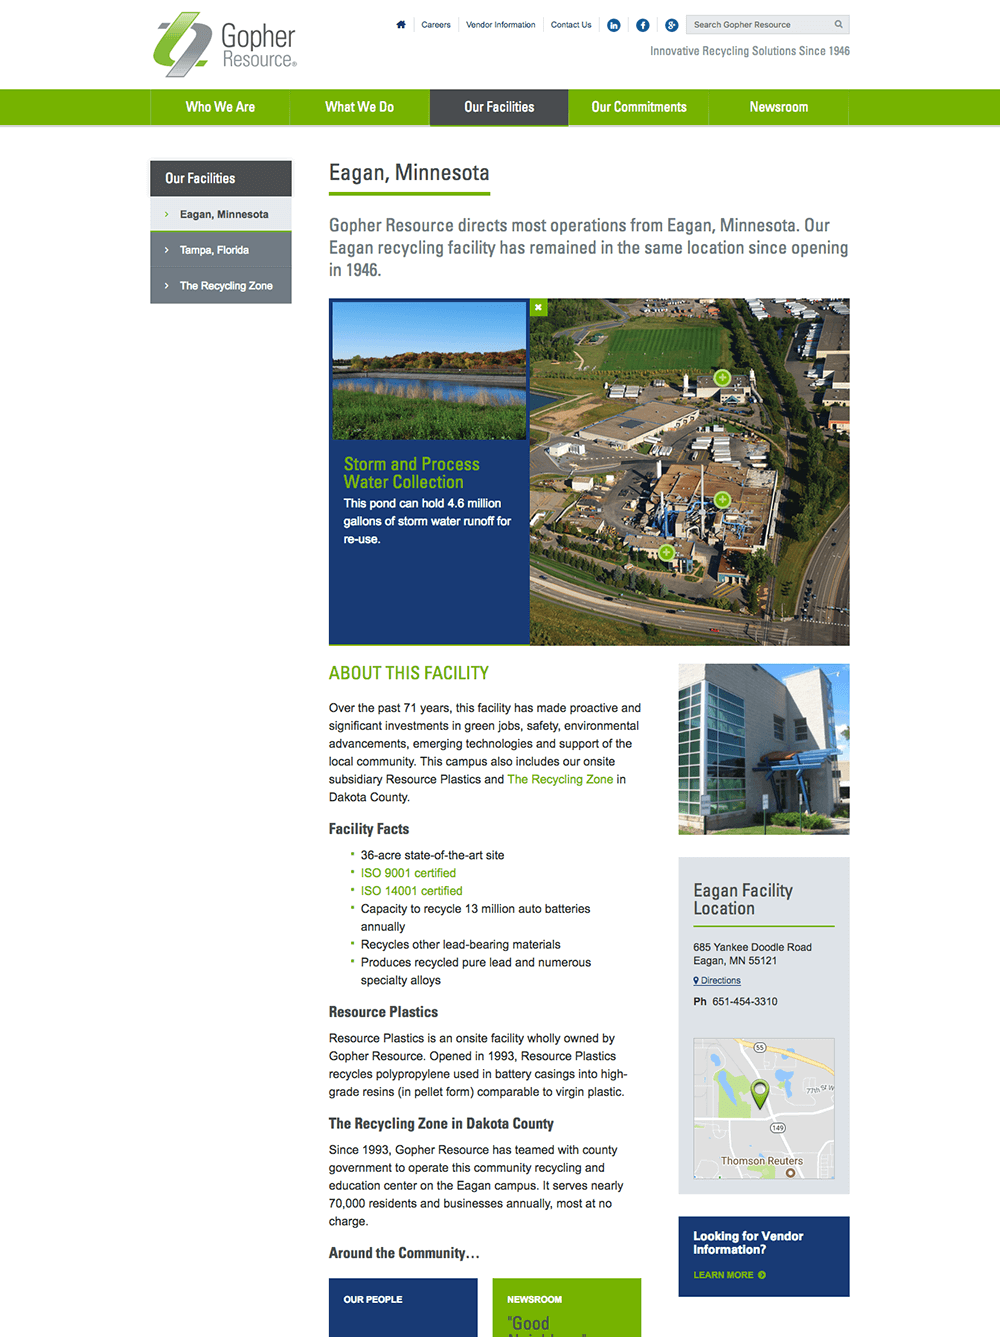 Our Facilities web page design